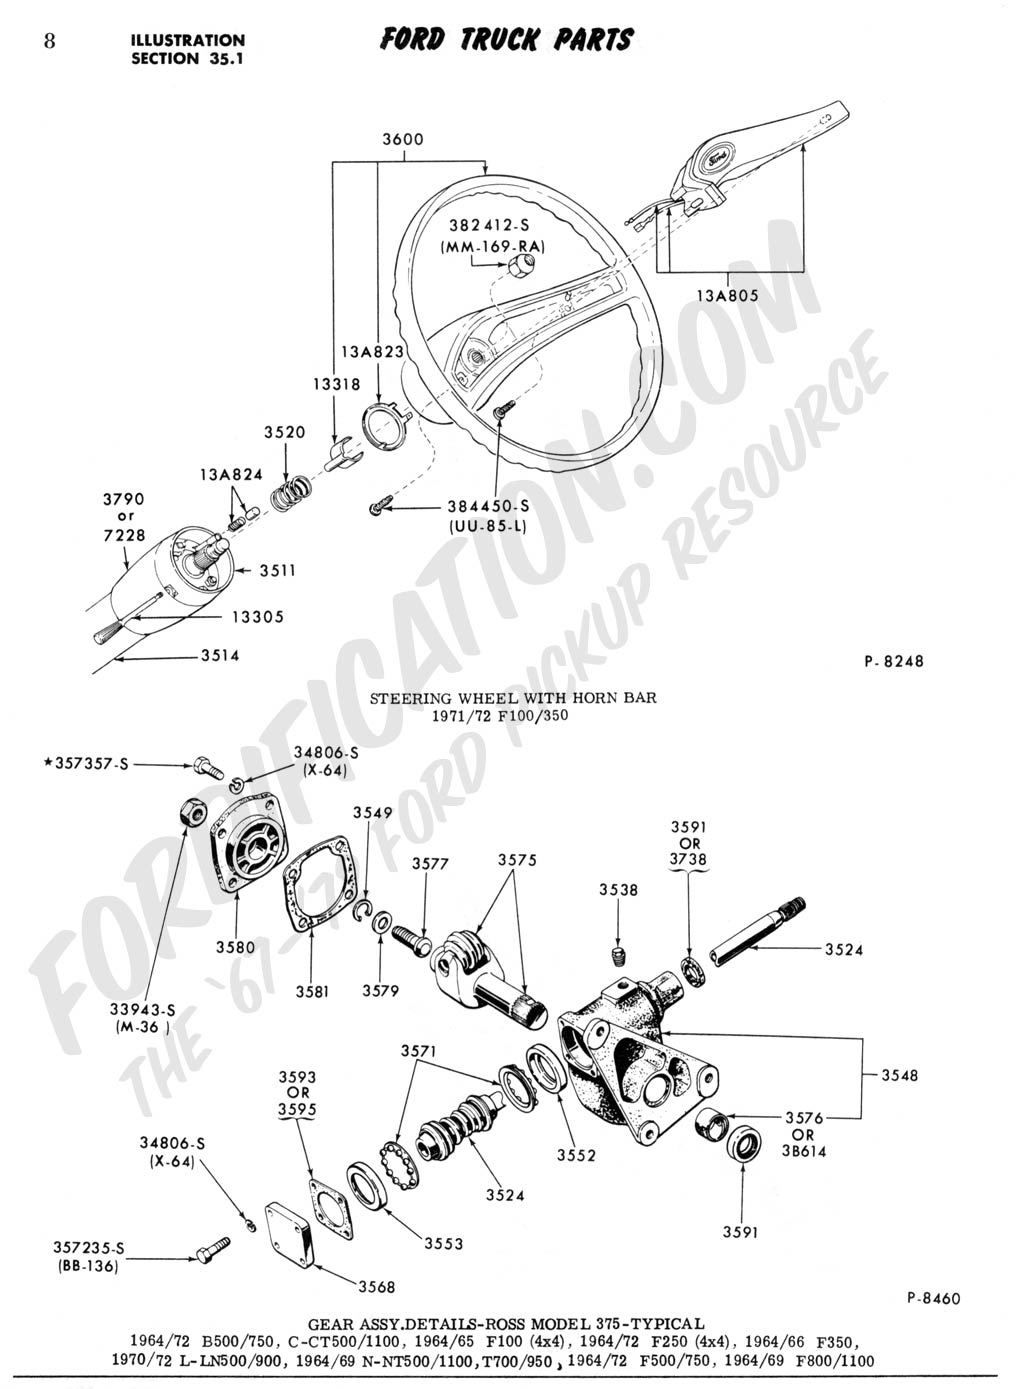 1967 ford galaxie 500 wiring diagram 1965 ford galaxie